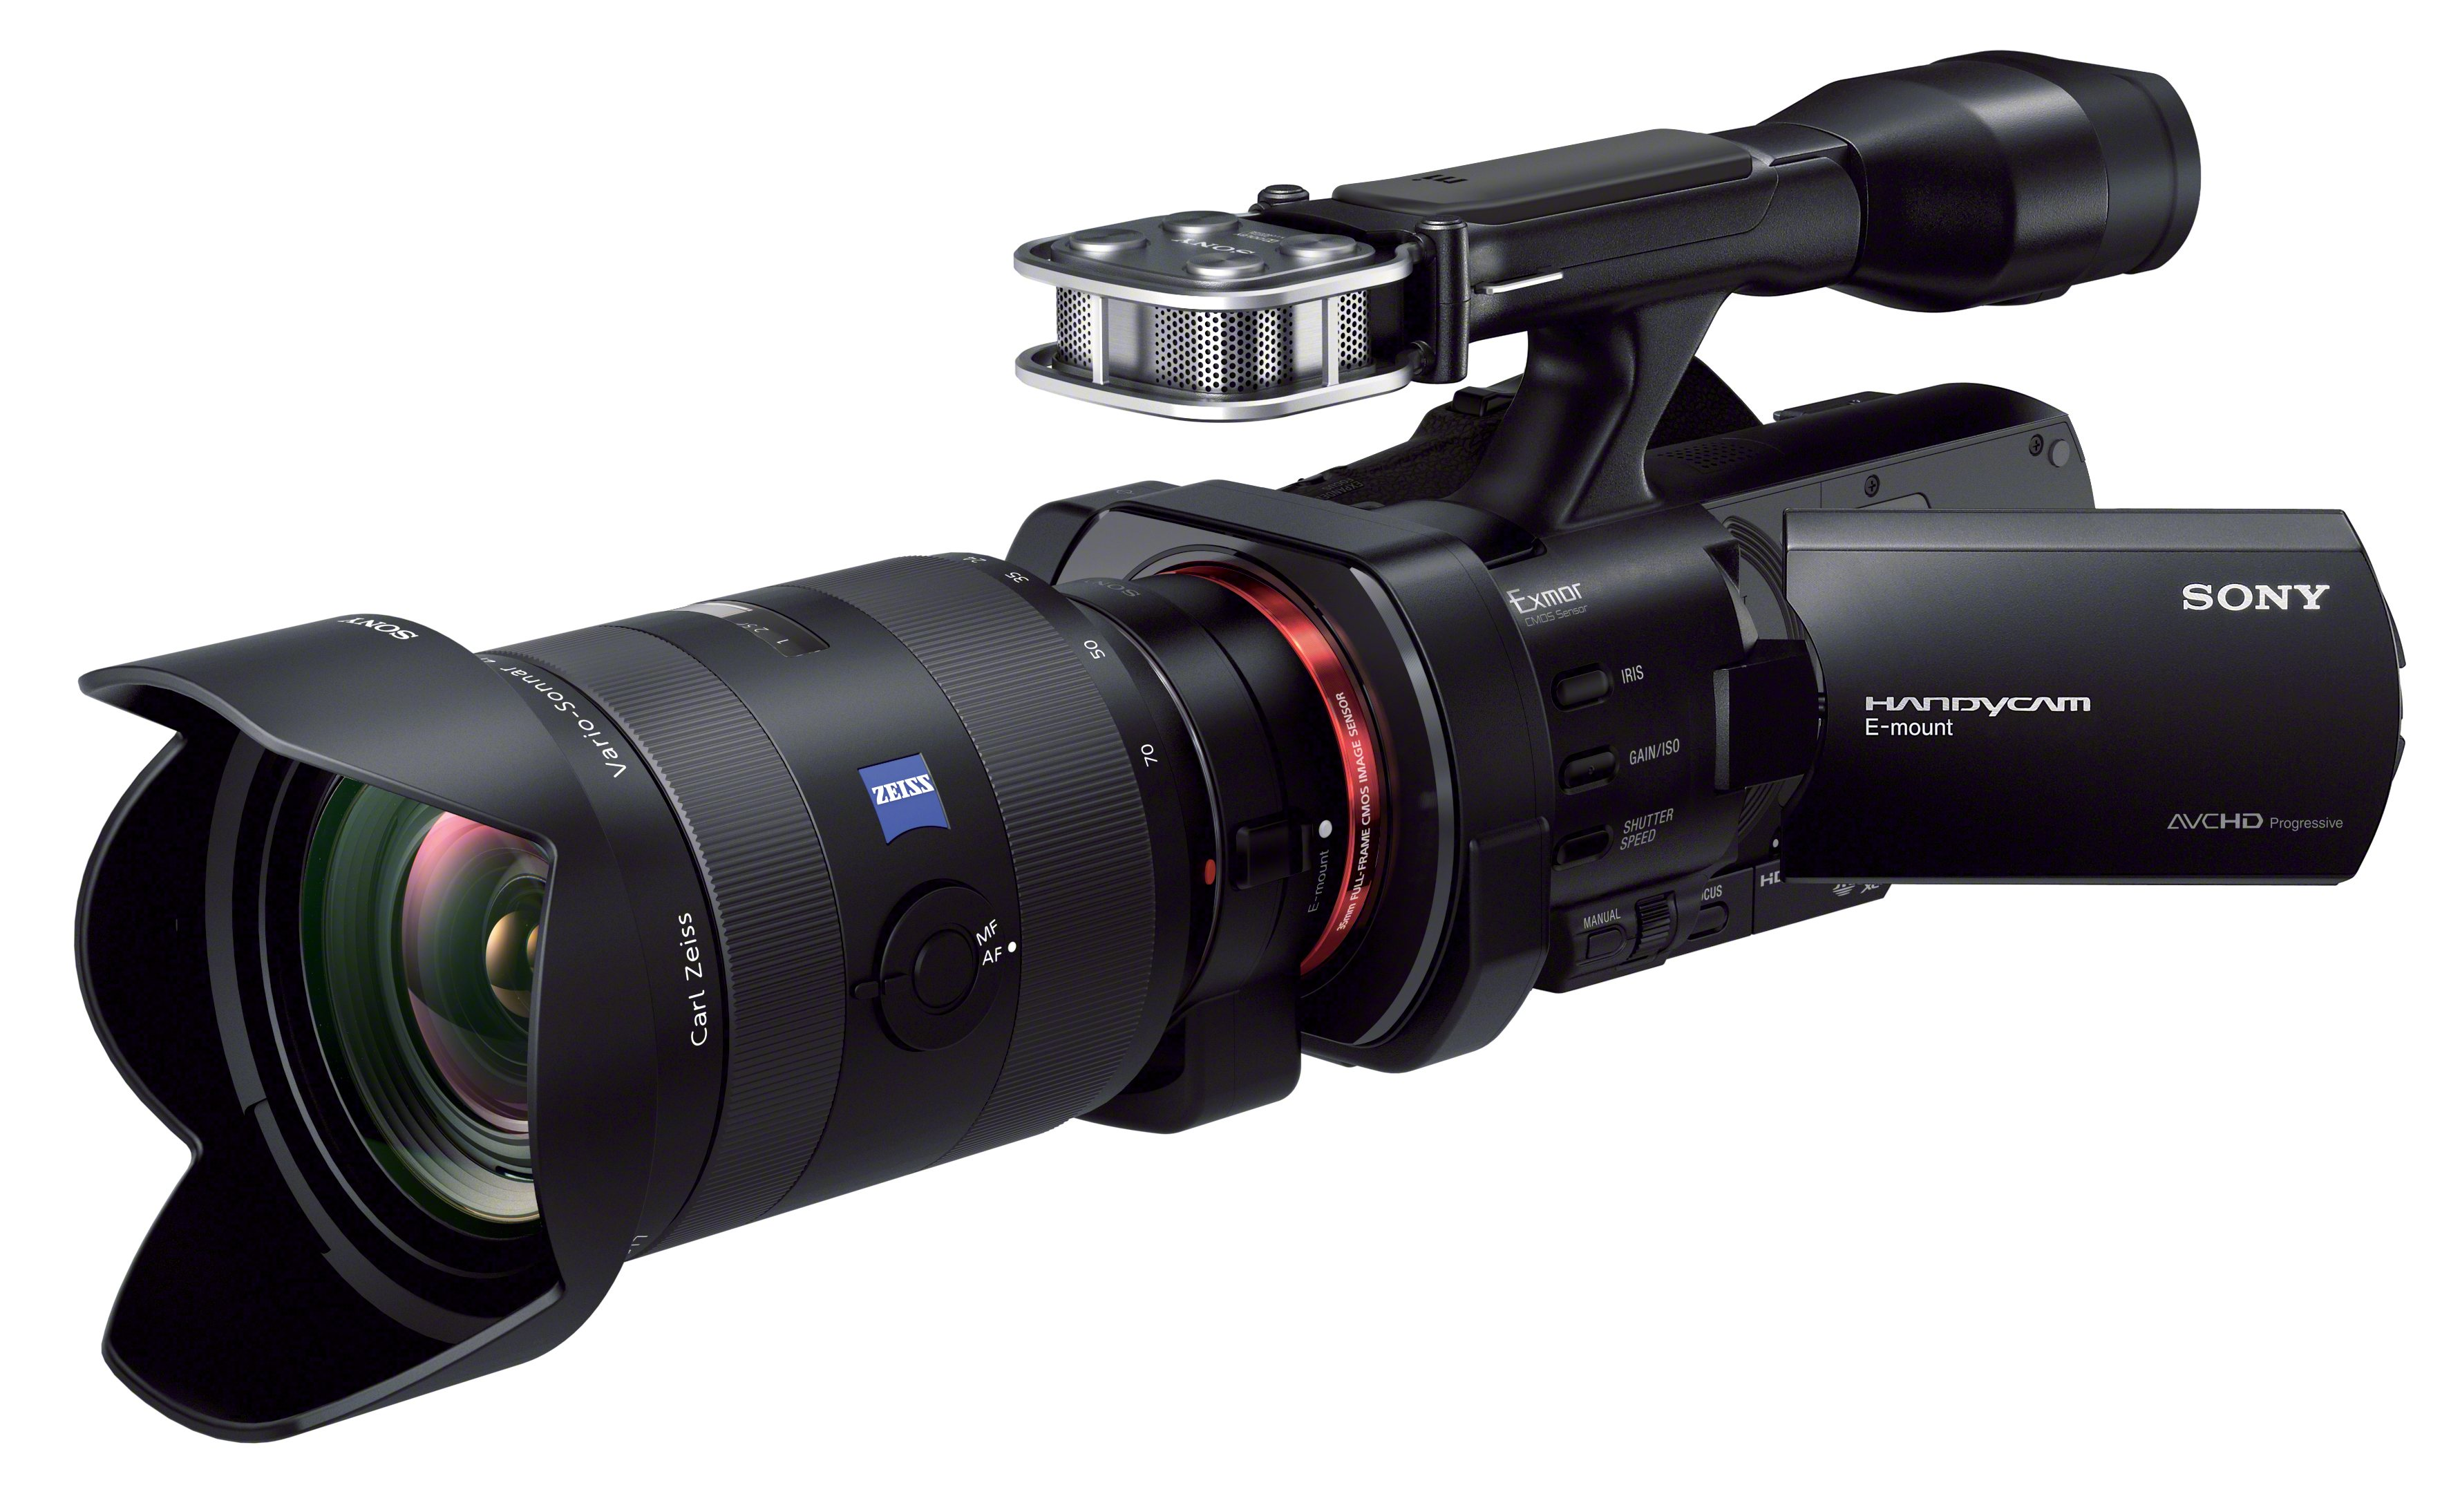 Sony introduces new Digital Imaging range with Full-Frame ...